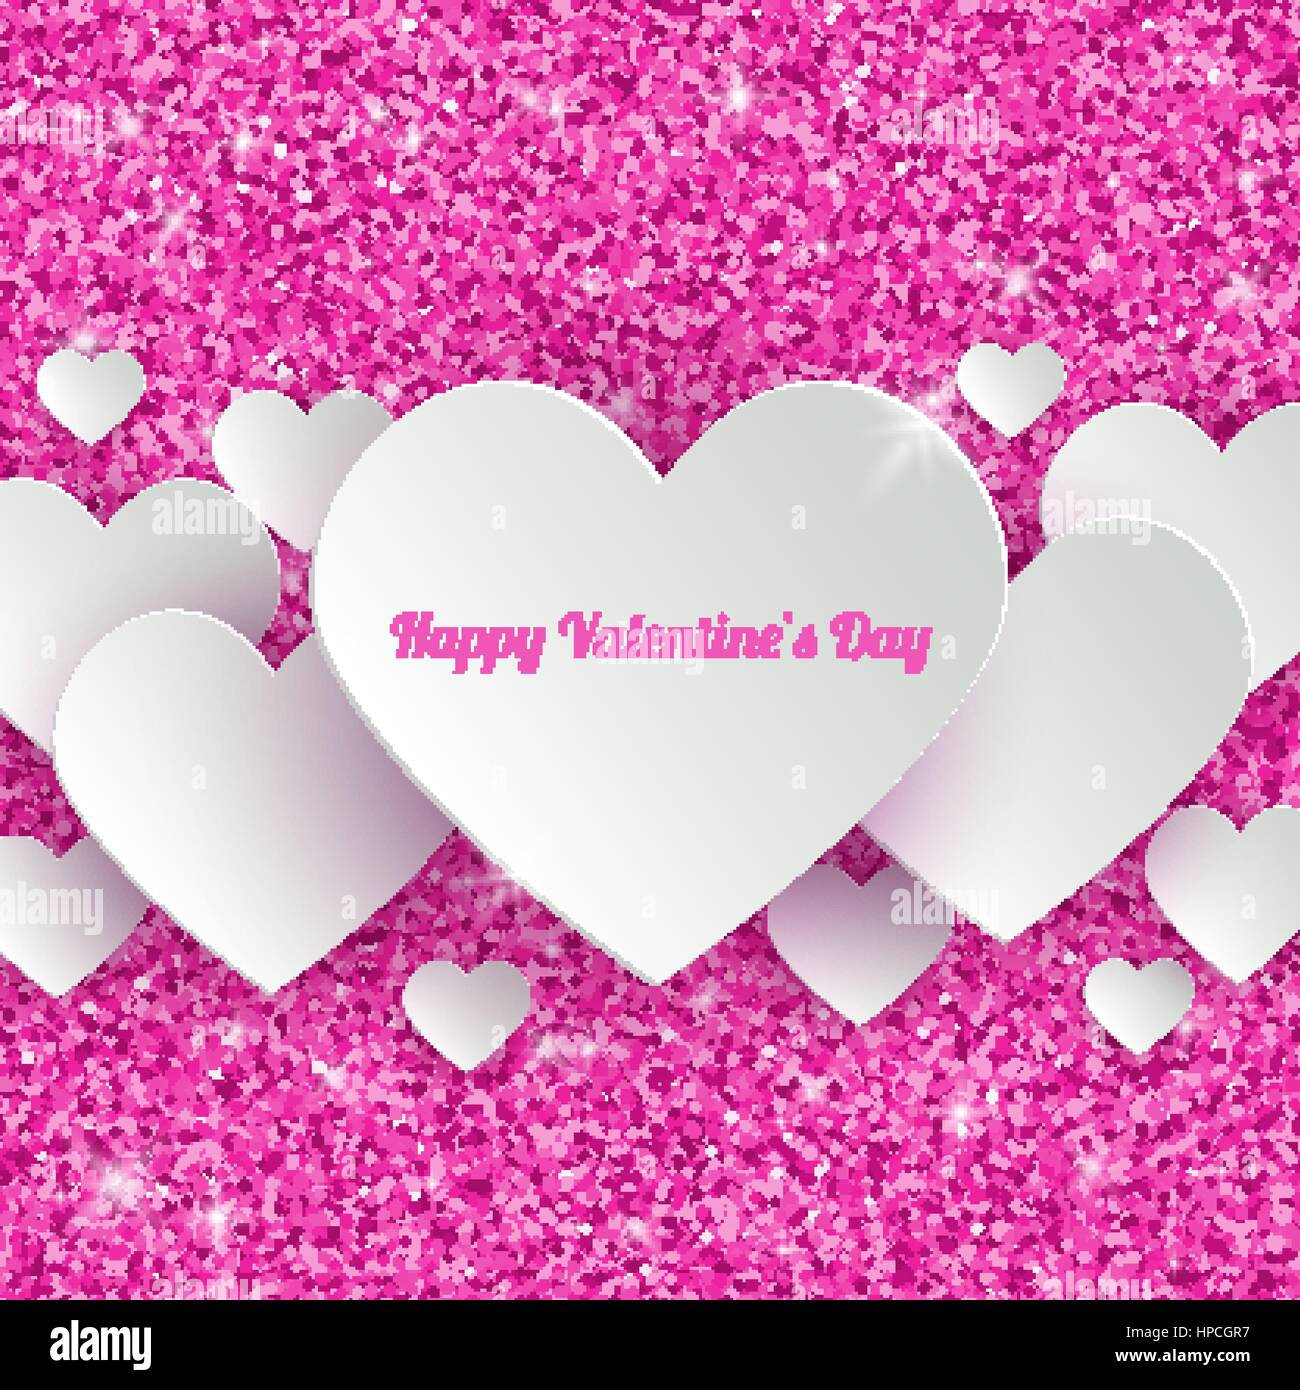 Happy Valentines Day Greeting Card With 3d White Paper Hearts On